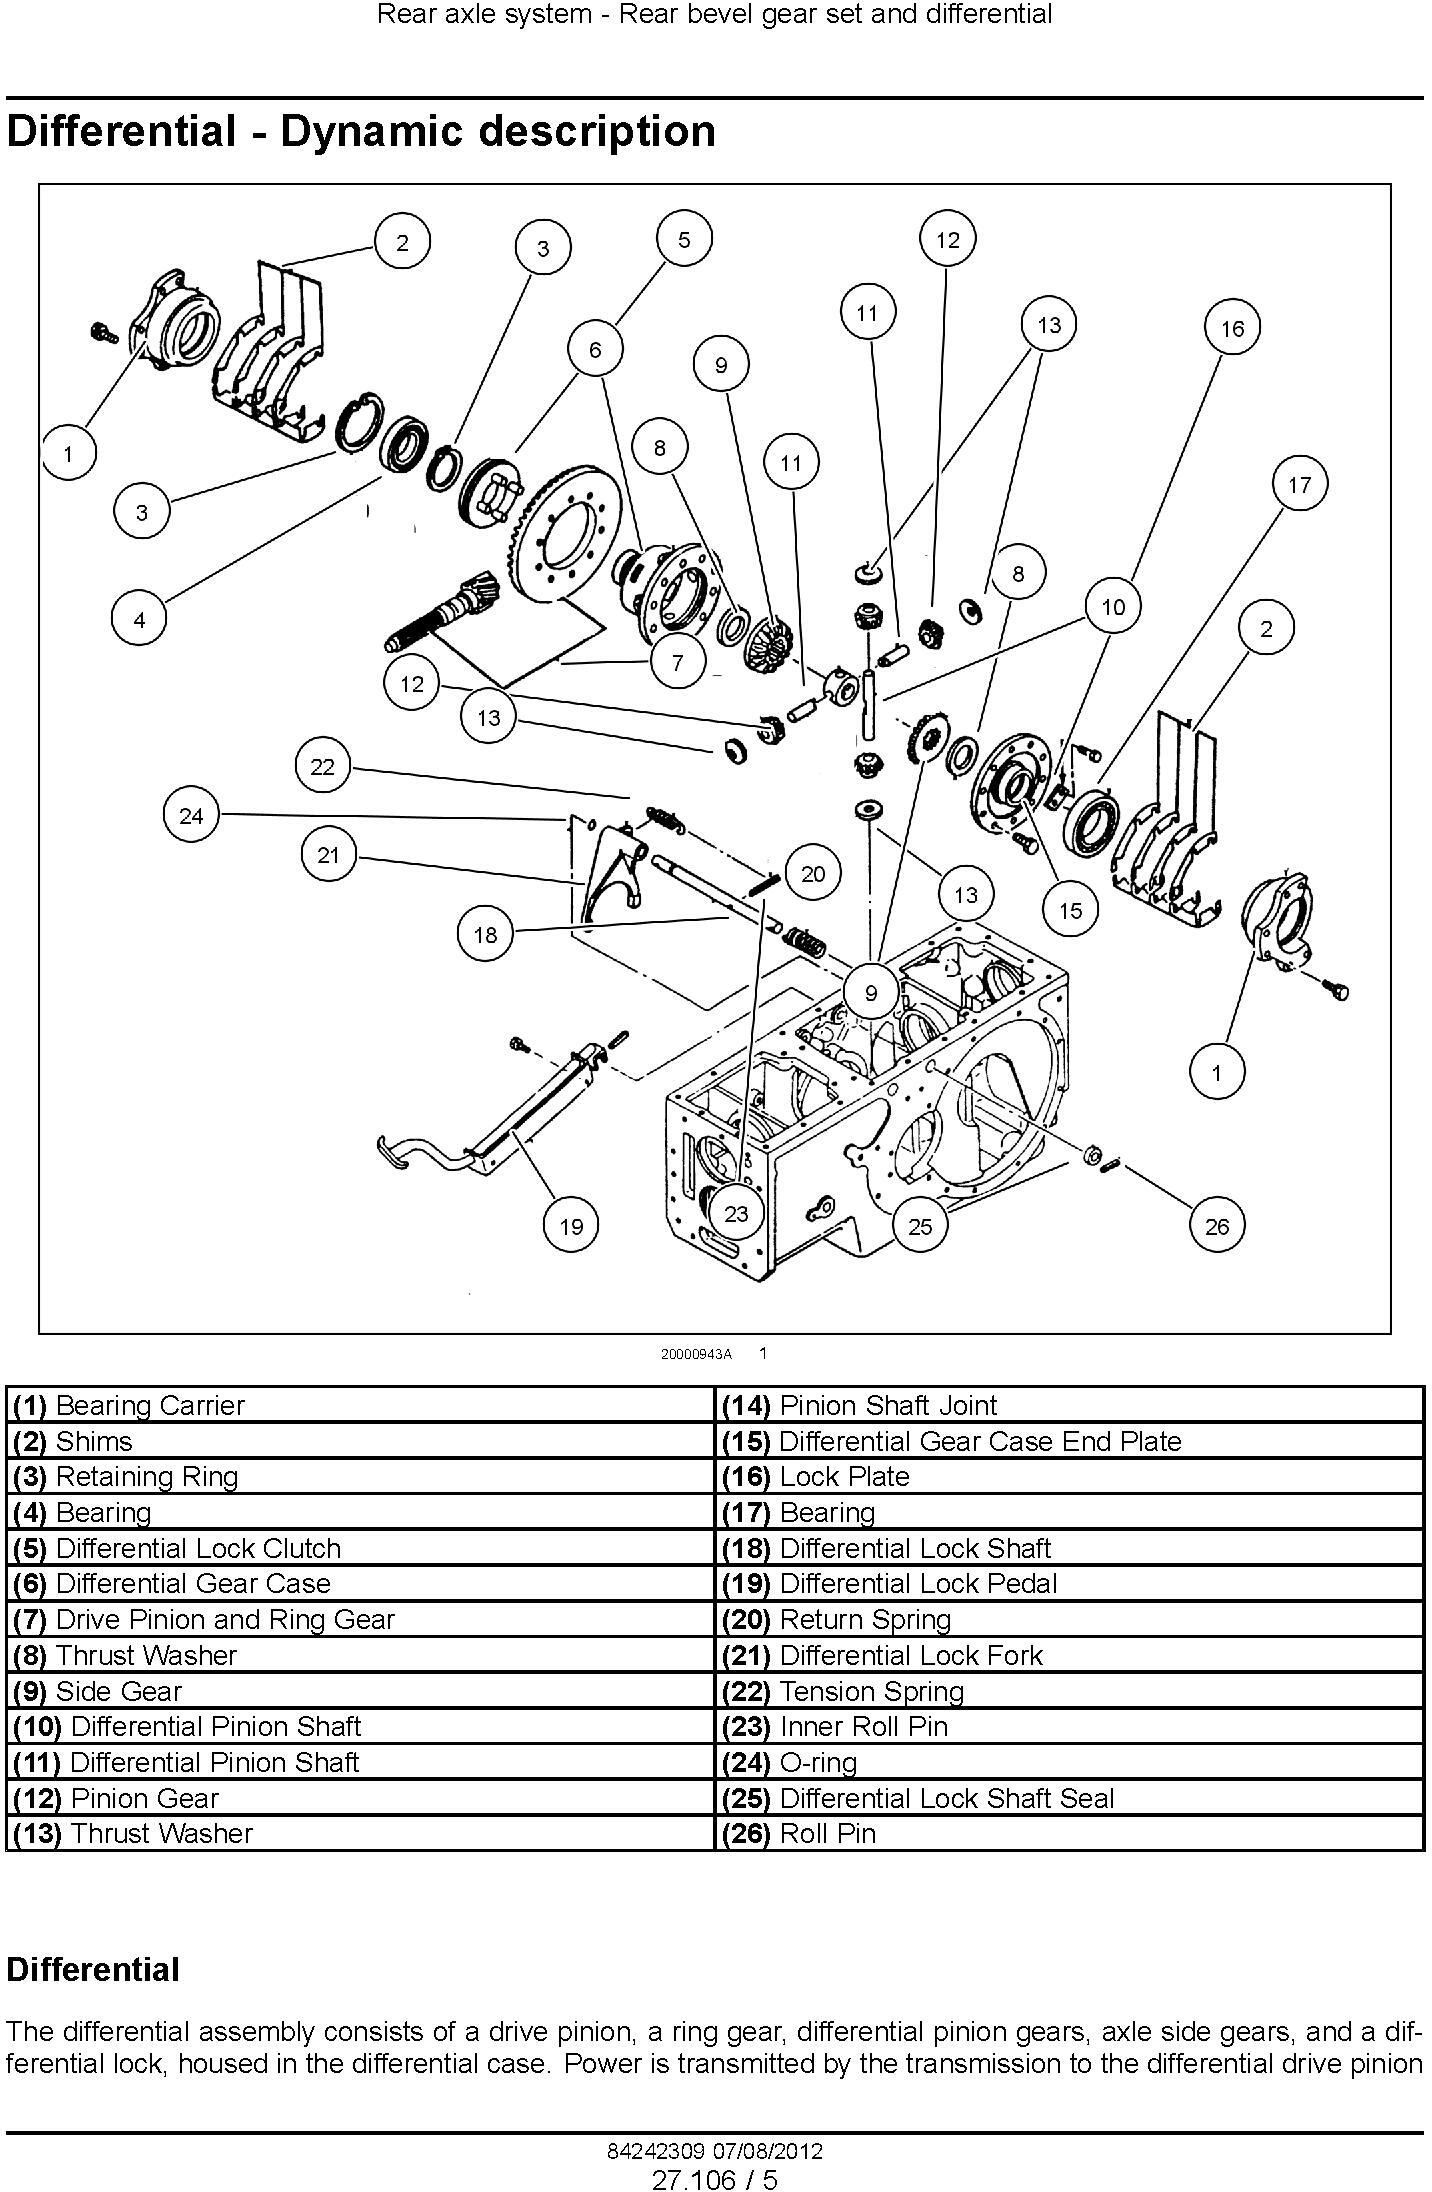 New Holland Boomer 3040, 3045, 3050 Compact Tractor (Hydrostatic or 2x12 Gear Trans.) Service Manual - 2